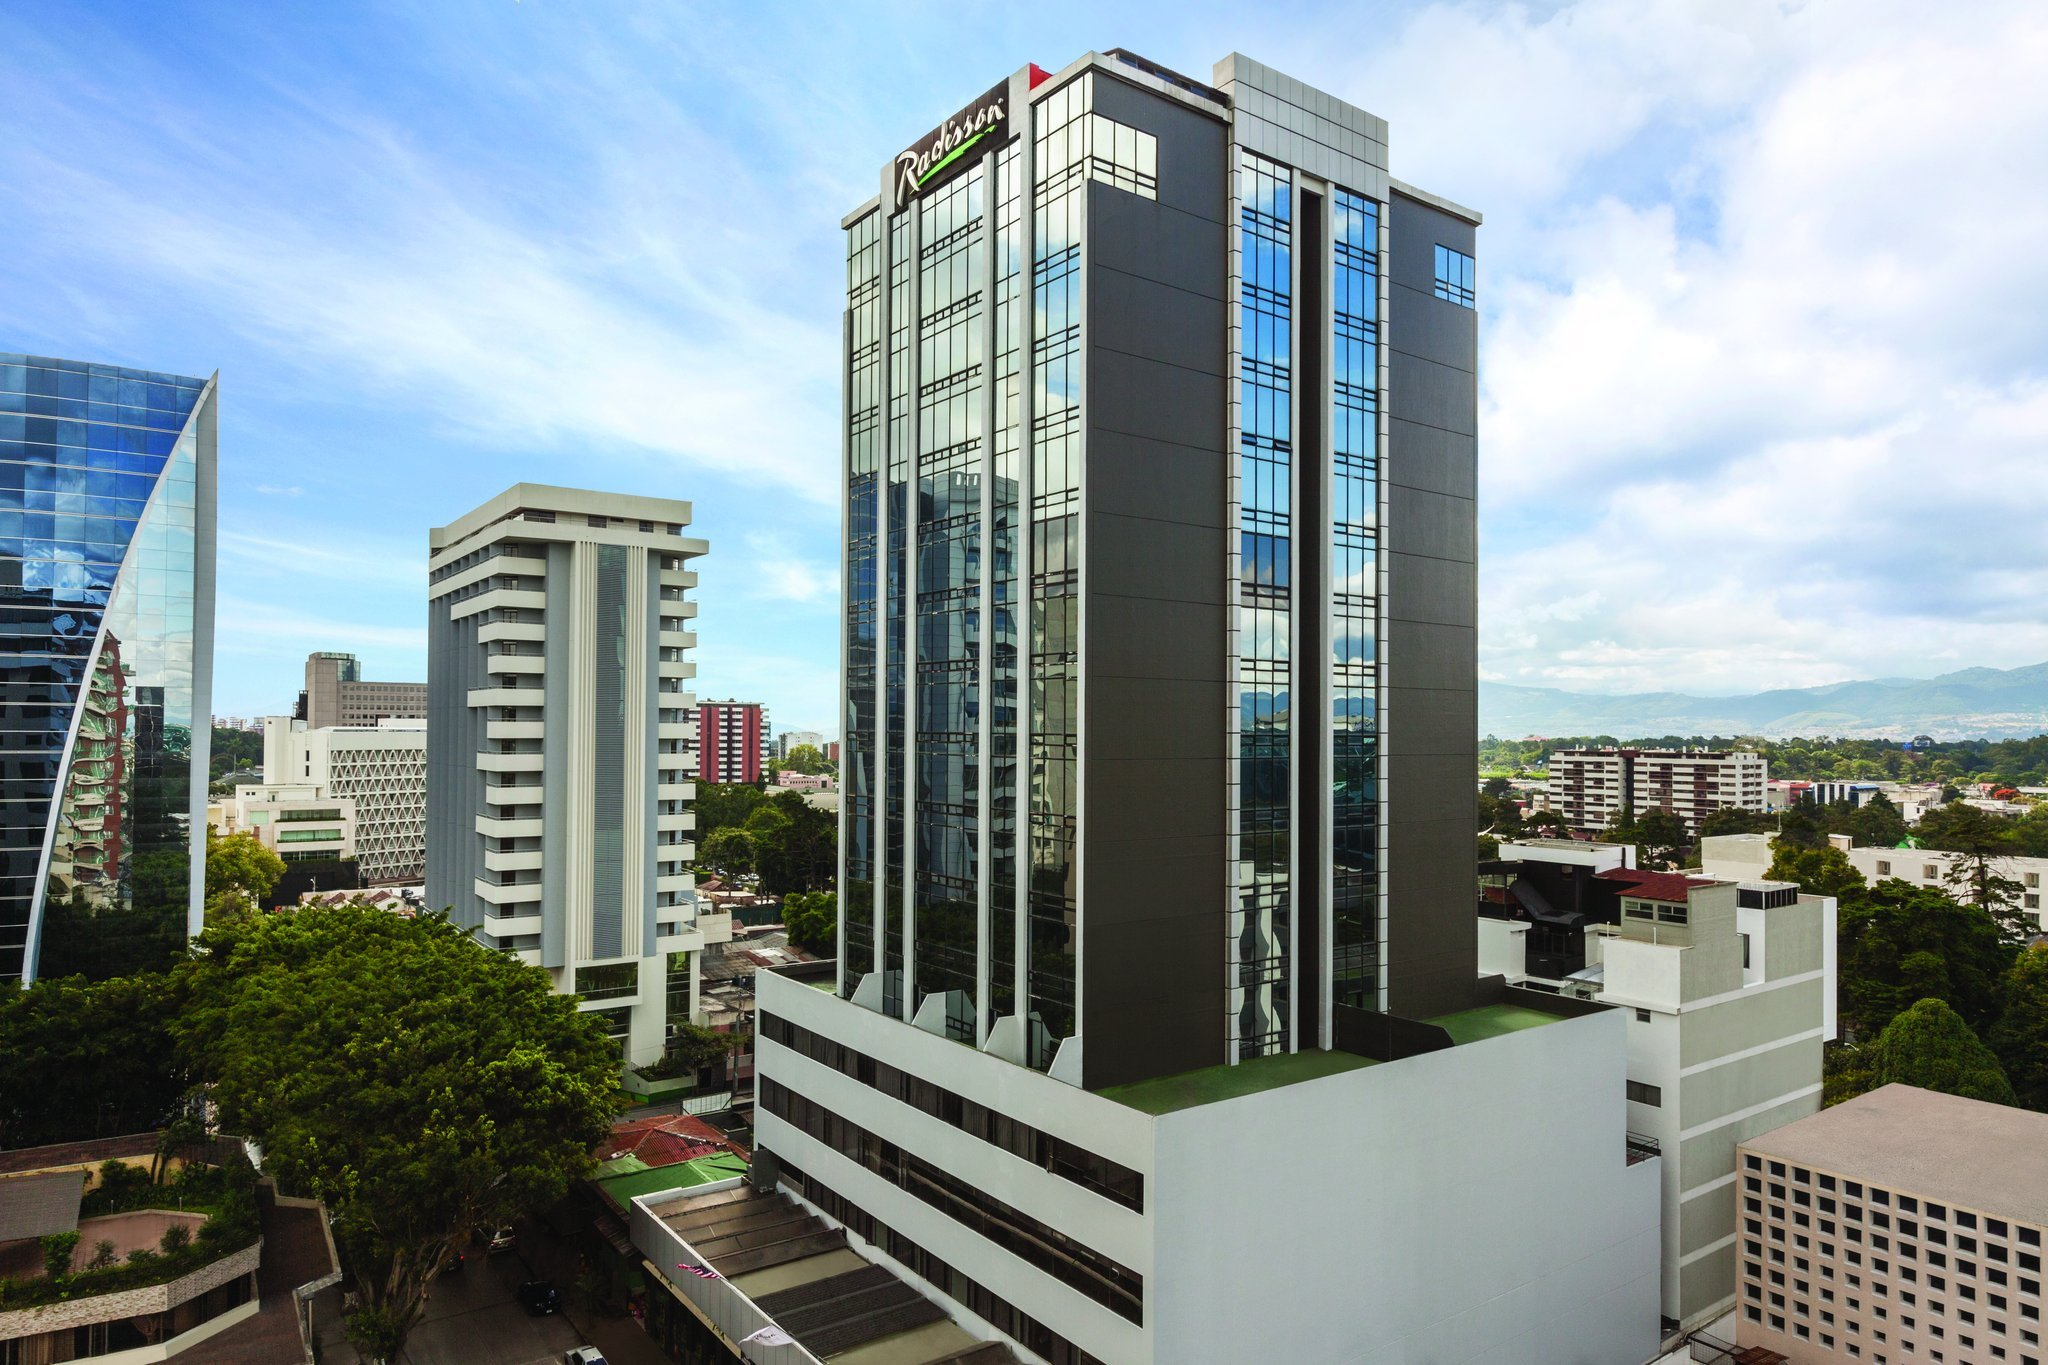 Radisson Hotel & Suites Guatemala City